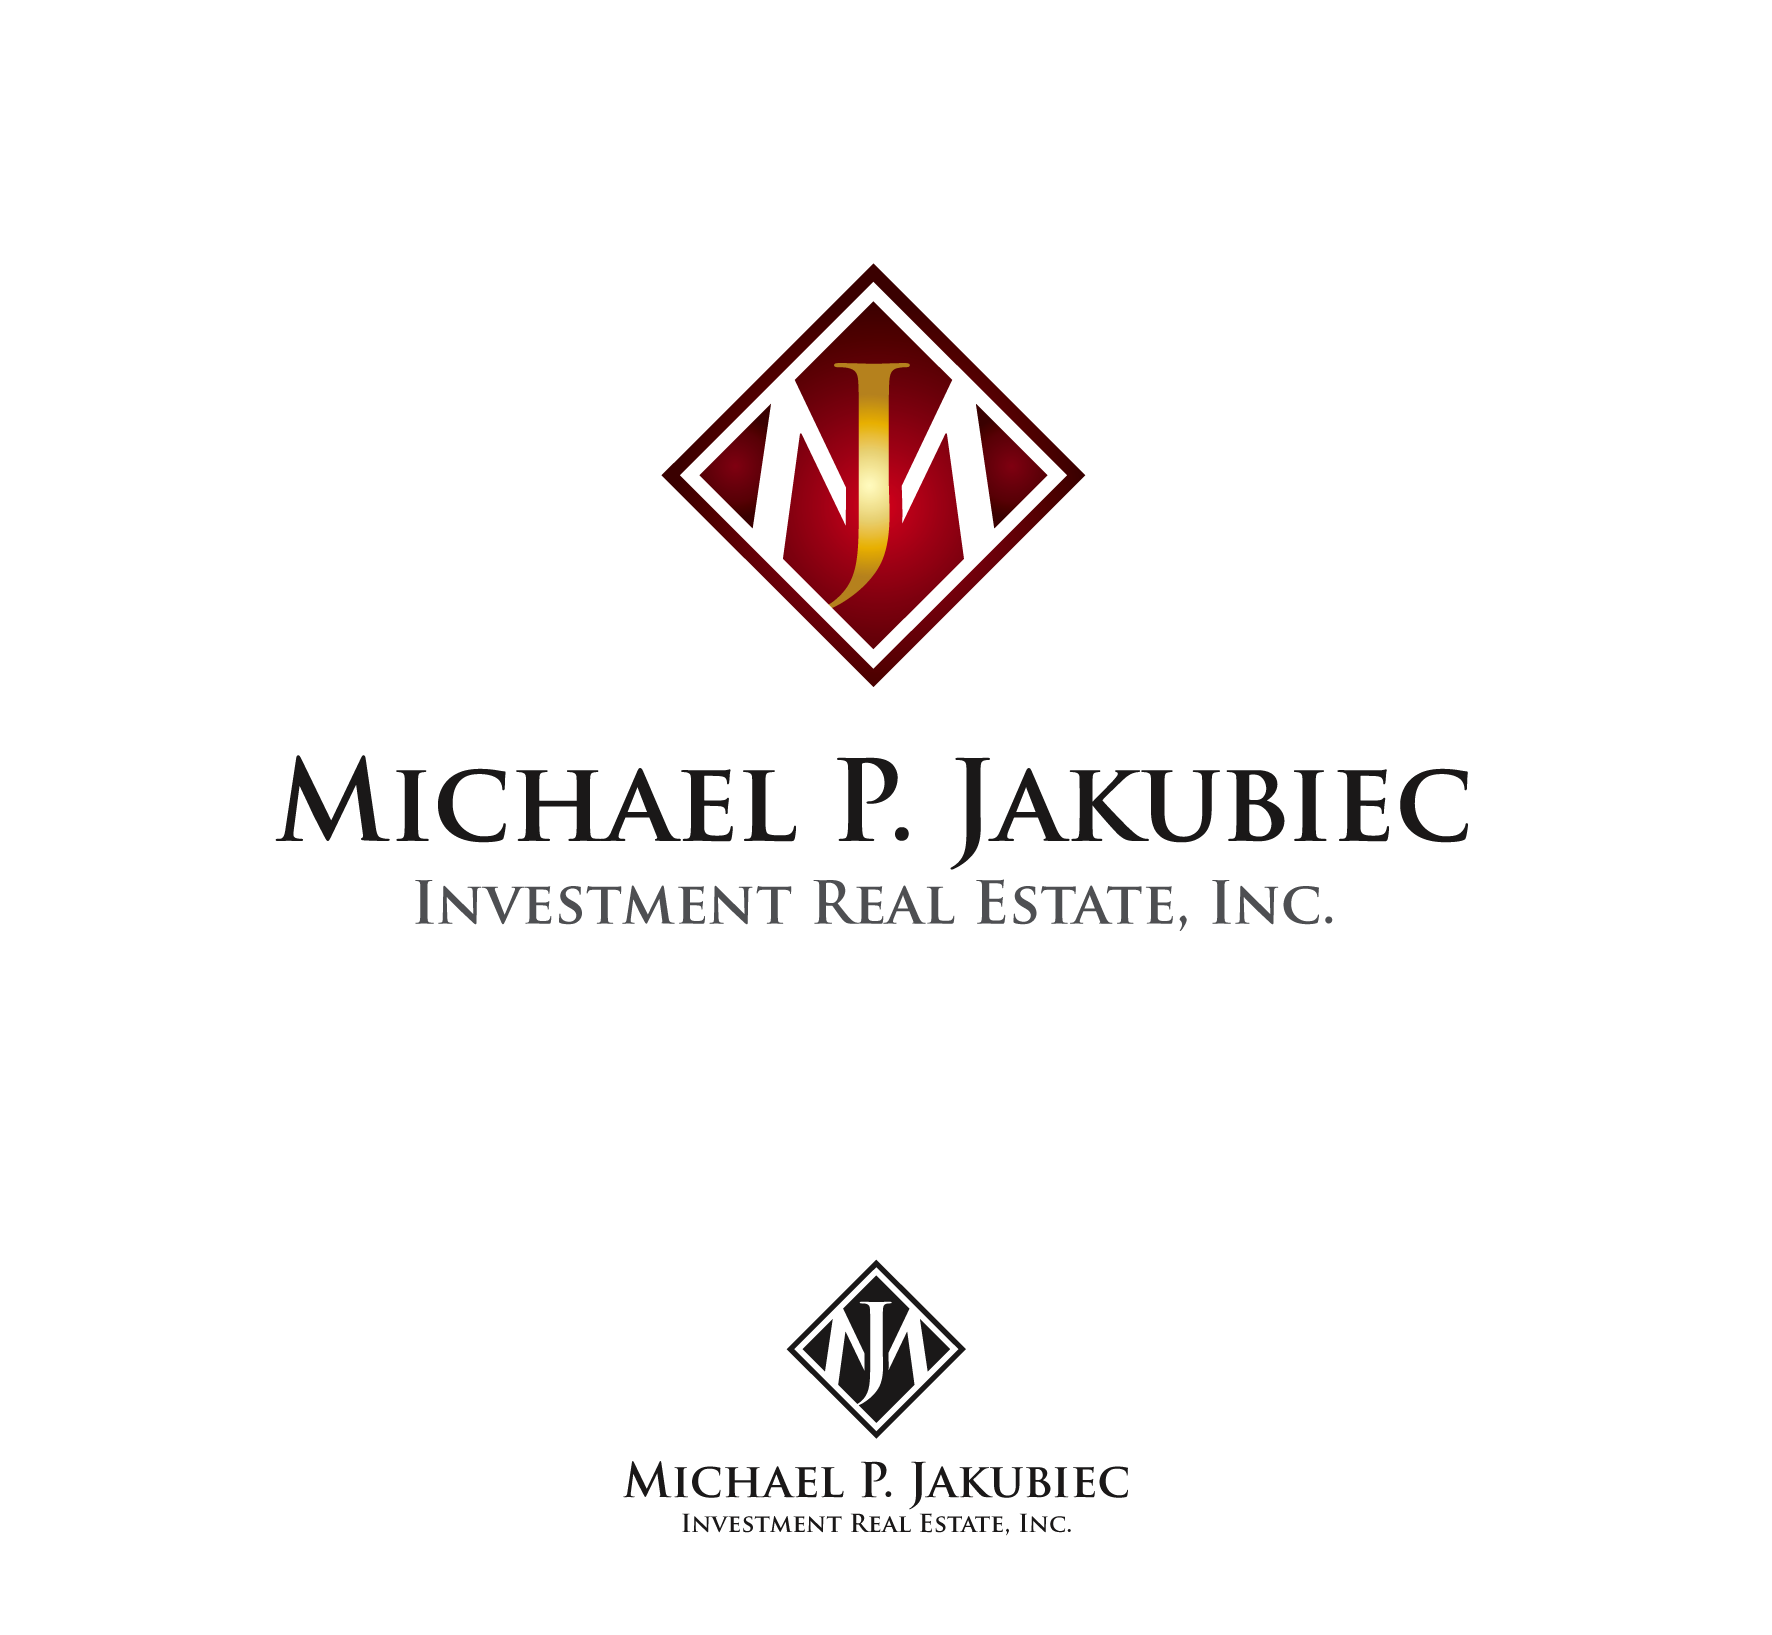 Logo Design by luna - Entry No. 43 in the Logo Design Contest New Logo Design for Michael P. Jakubiec Investment Real Estate, Inc..